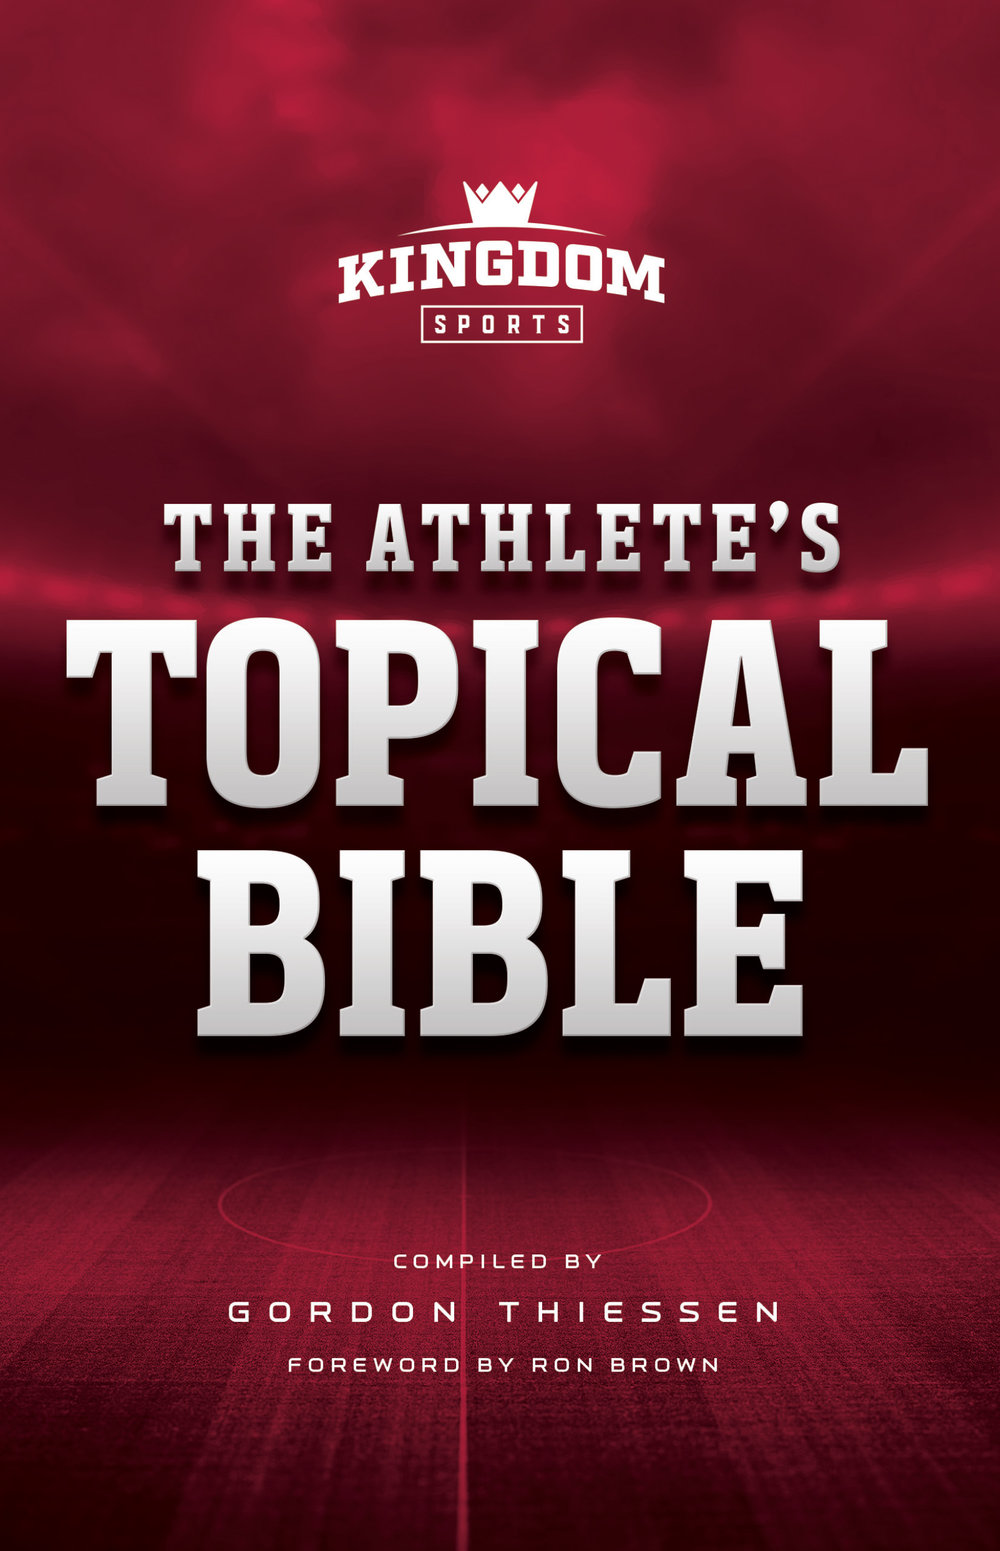 Kingdom+Sports+Topical+Bible+front.jpg